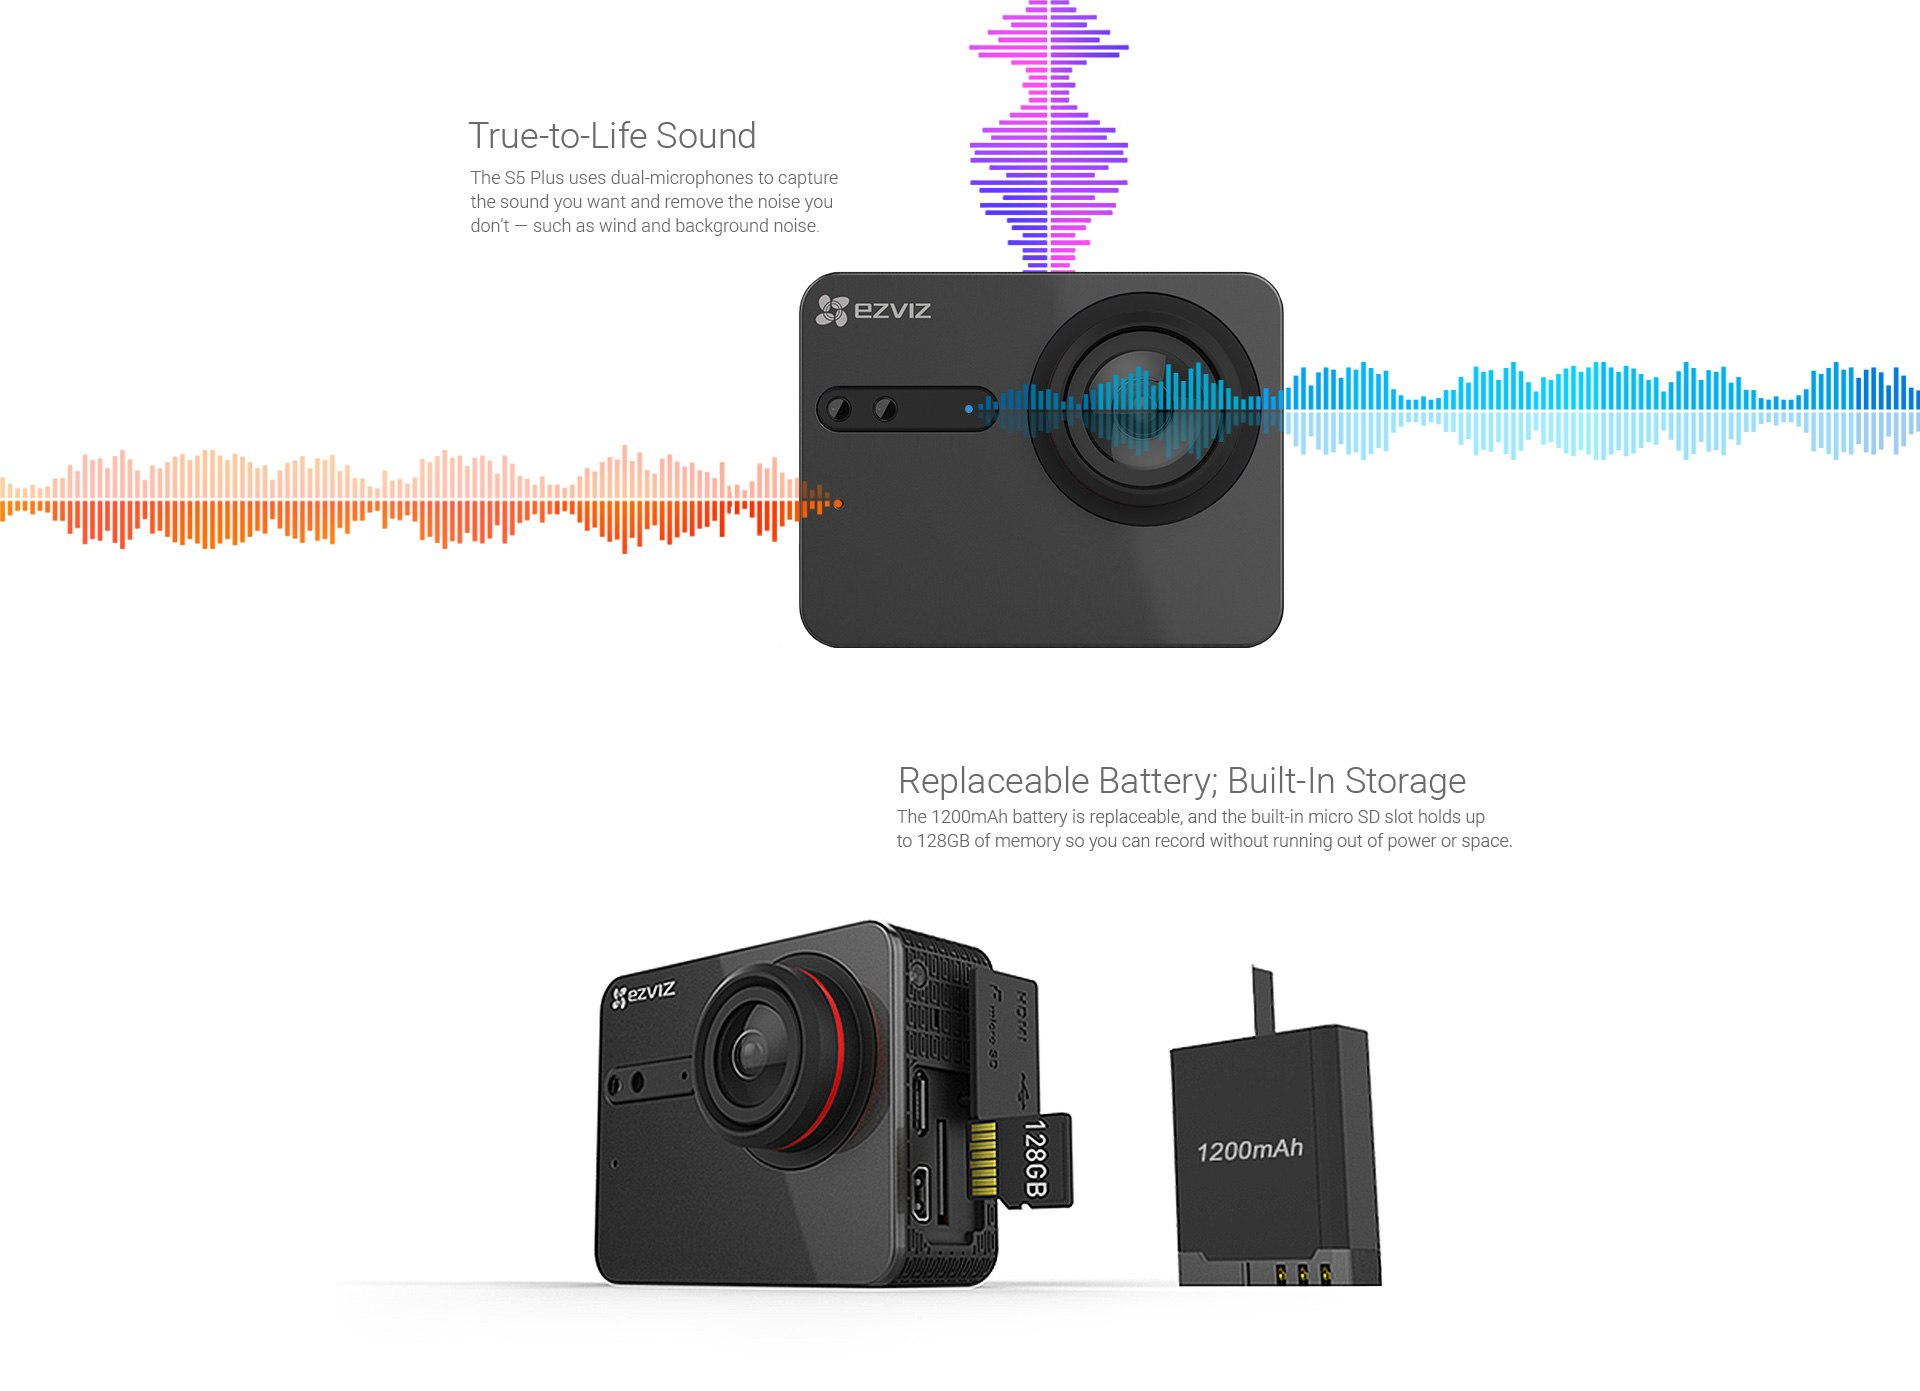 Ture-to-Life Sound & Replaceable Battery; Build-in Storage